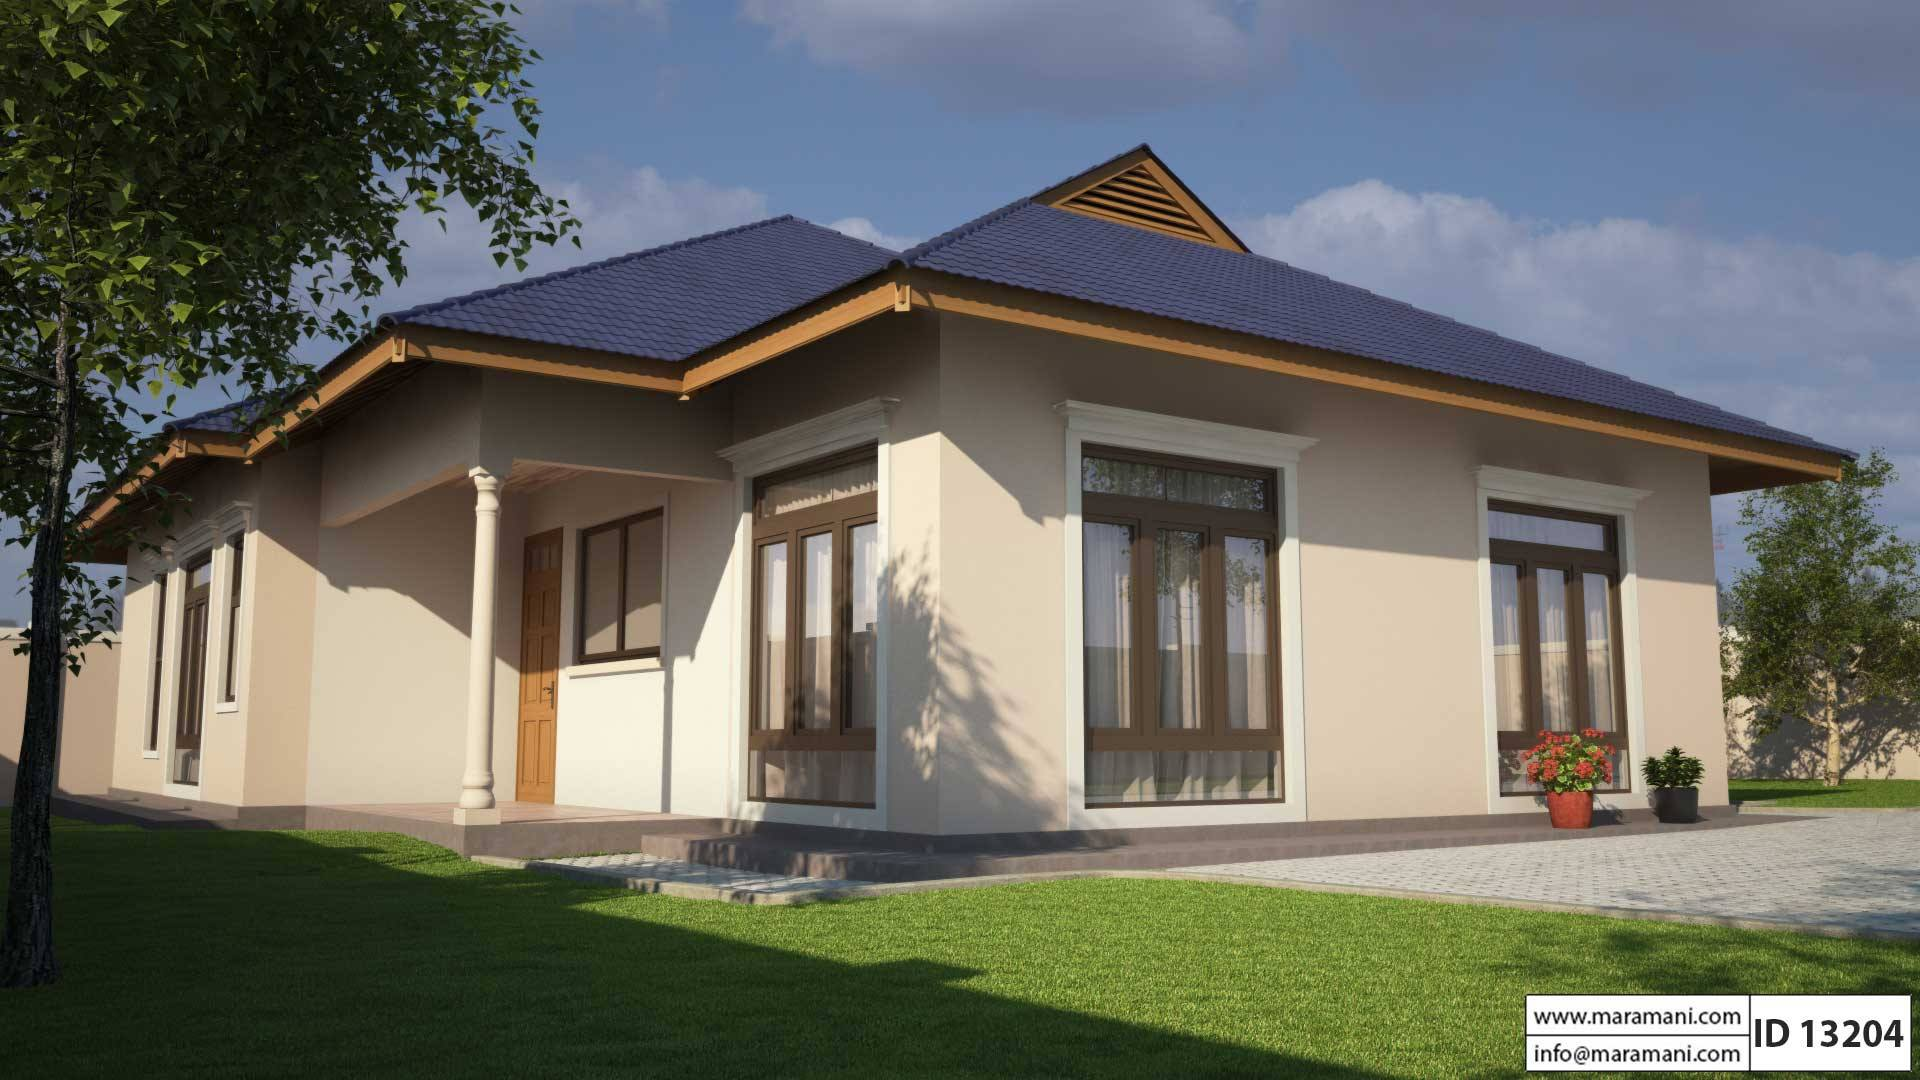 Small Three Bedroom House Plan   ID 13204   Floor Plans By Maramani